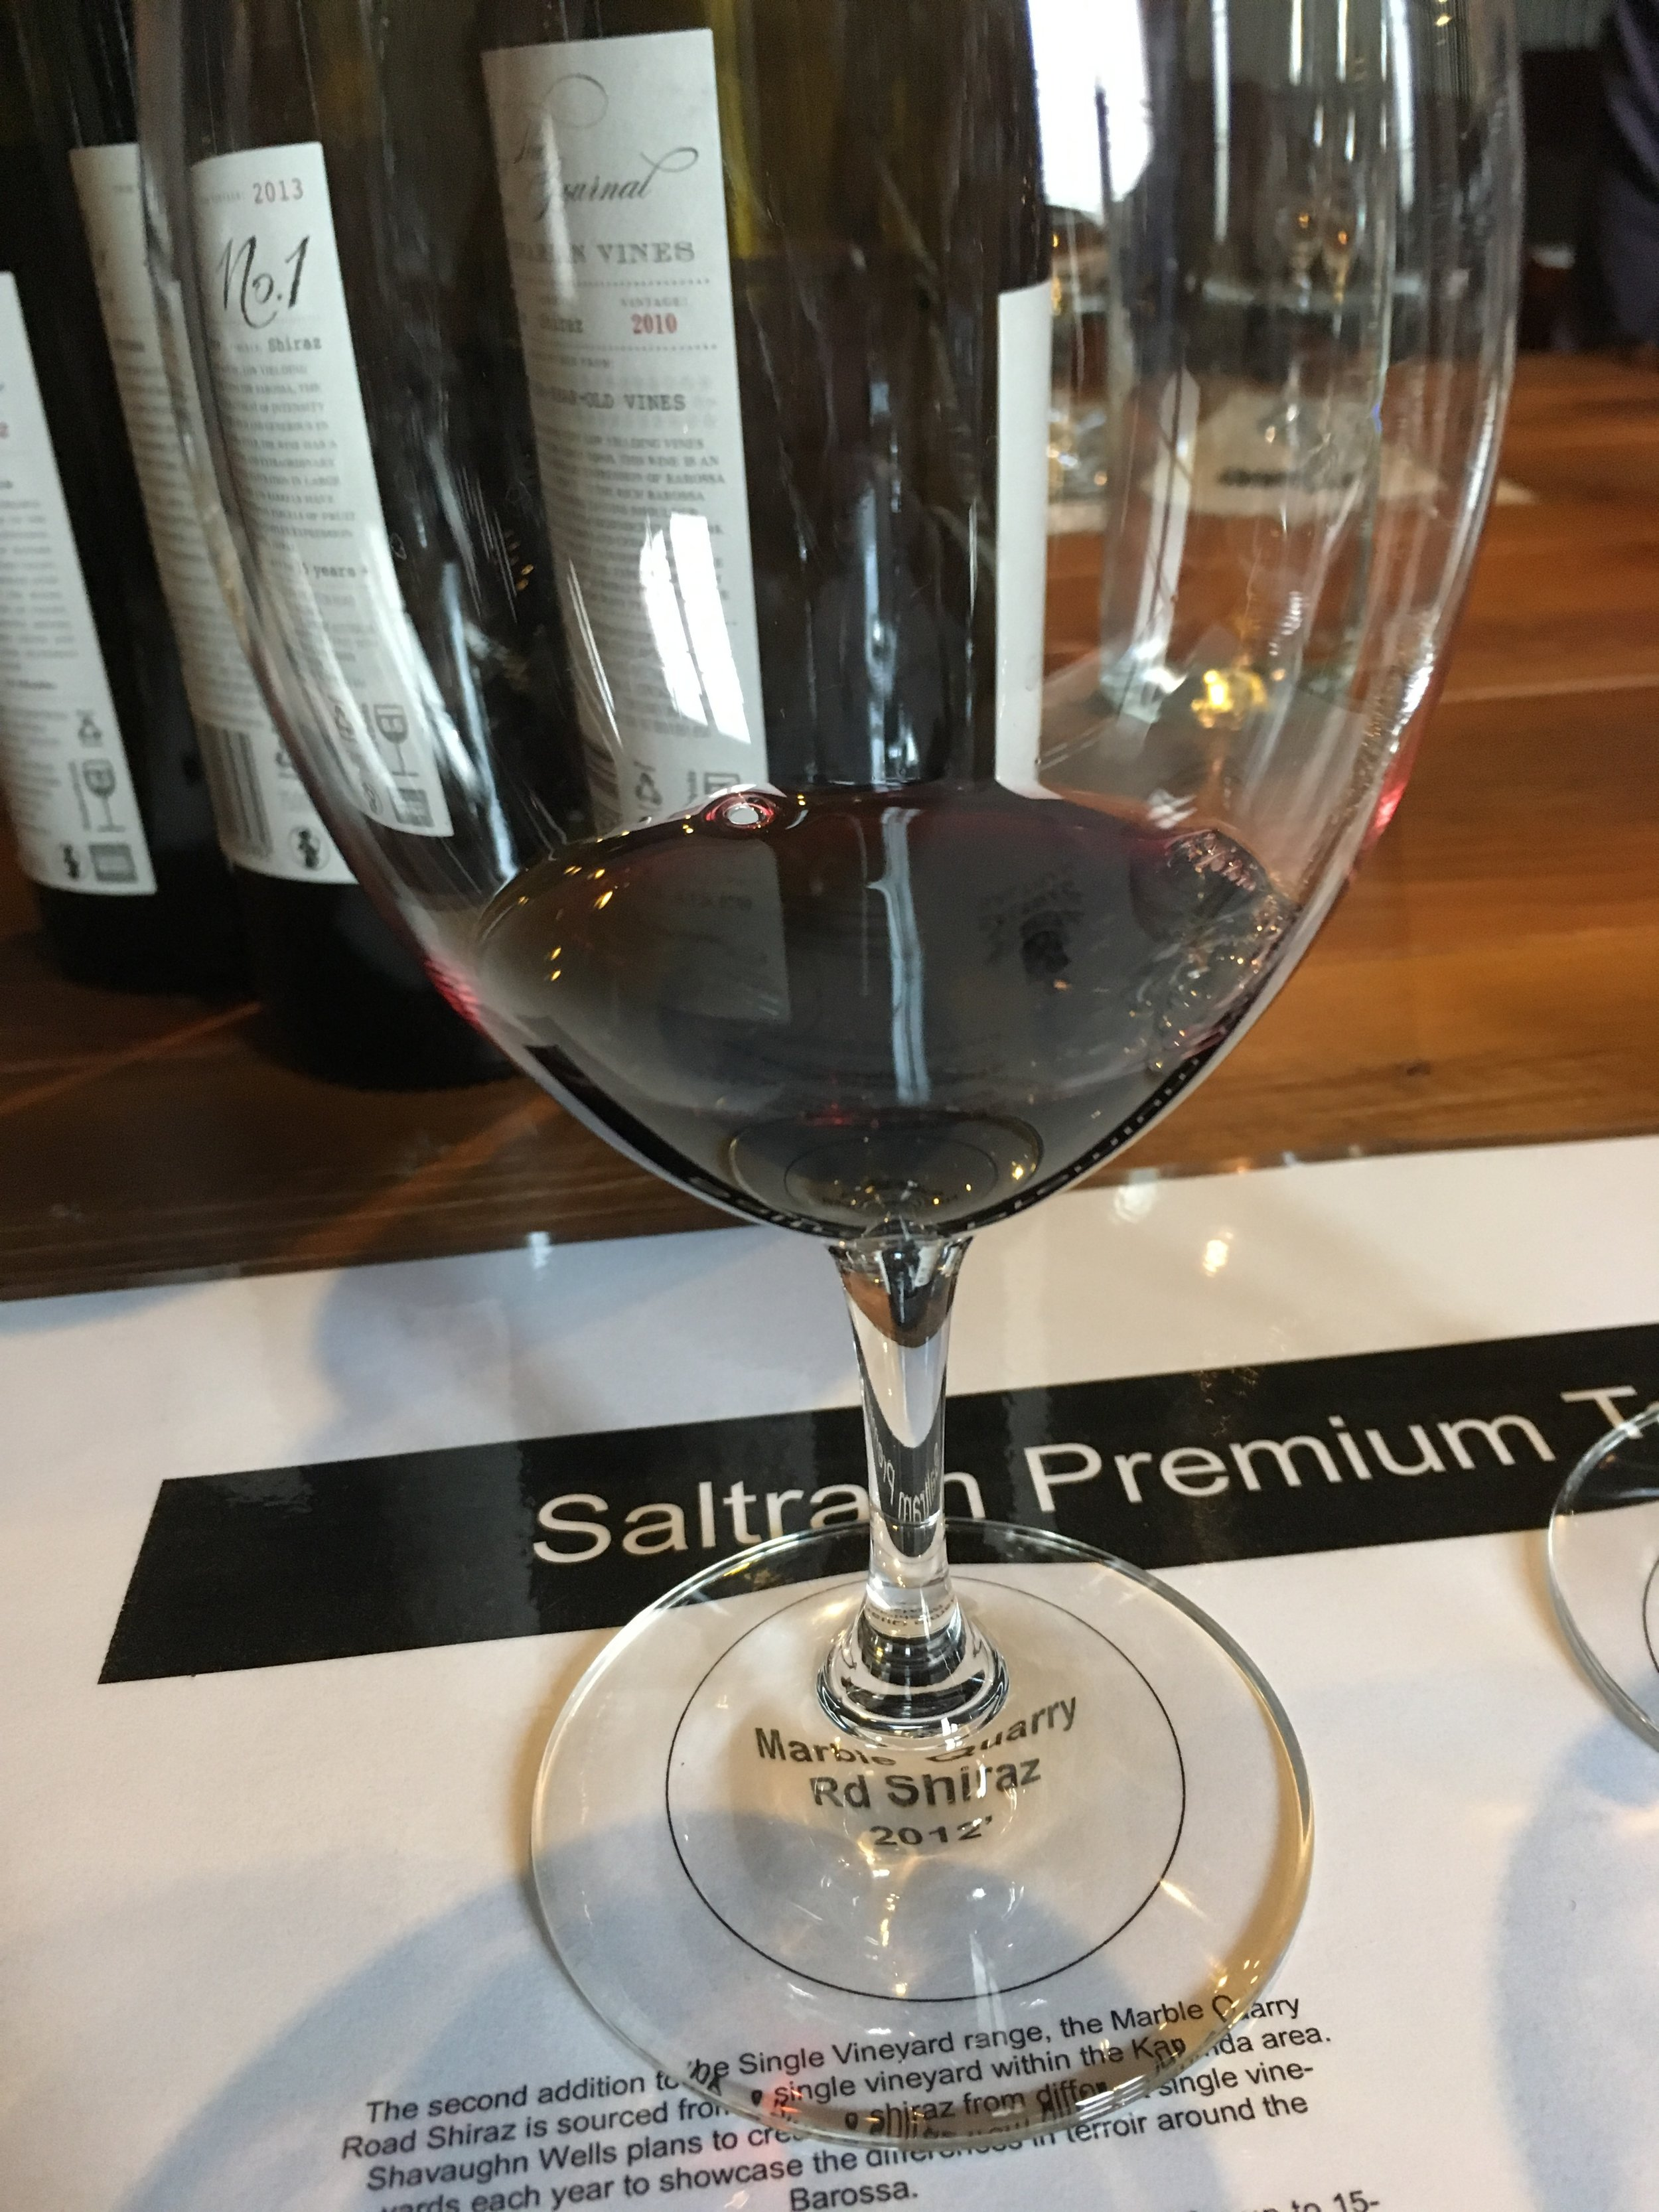 # 7: Saltram Marble Quarry Rd 2012 Shiraz - Colour: Red wine, that is bright, opaque and with purple tintsNose: Vanilla, possibly some rose, plenty of jammy dark fruitPalate: Attack is clean. Mid palate has pepper, vanilla and dark fruit, and just ripe plum, and currants. Finish: About 5-7 minutes long but will improve with time.Food pairing: Game with a rich mushroom sauce